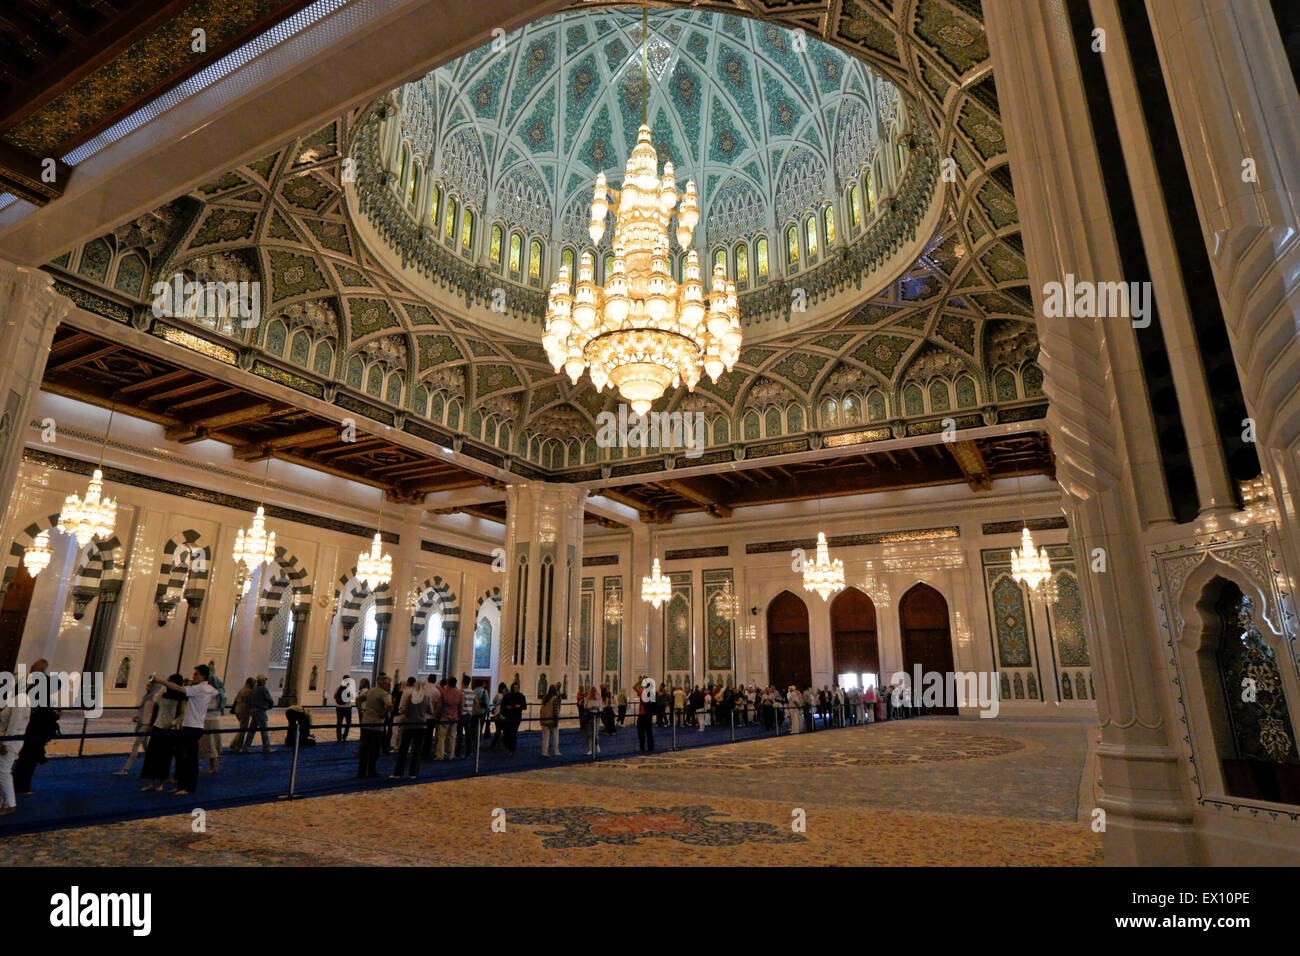 Dome and crystal chandelier interior of sultan qaboos grand mosque dome and crystal chandelier interior of sultan qaboos grand mosque muscat oman aloadofball Gallery